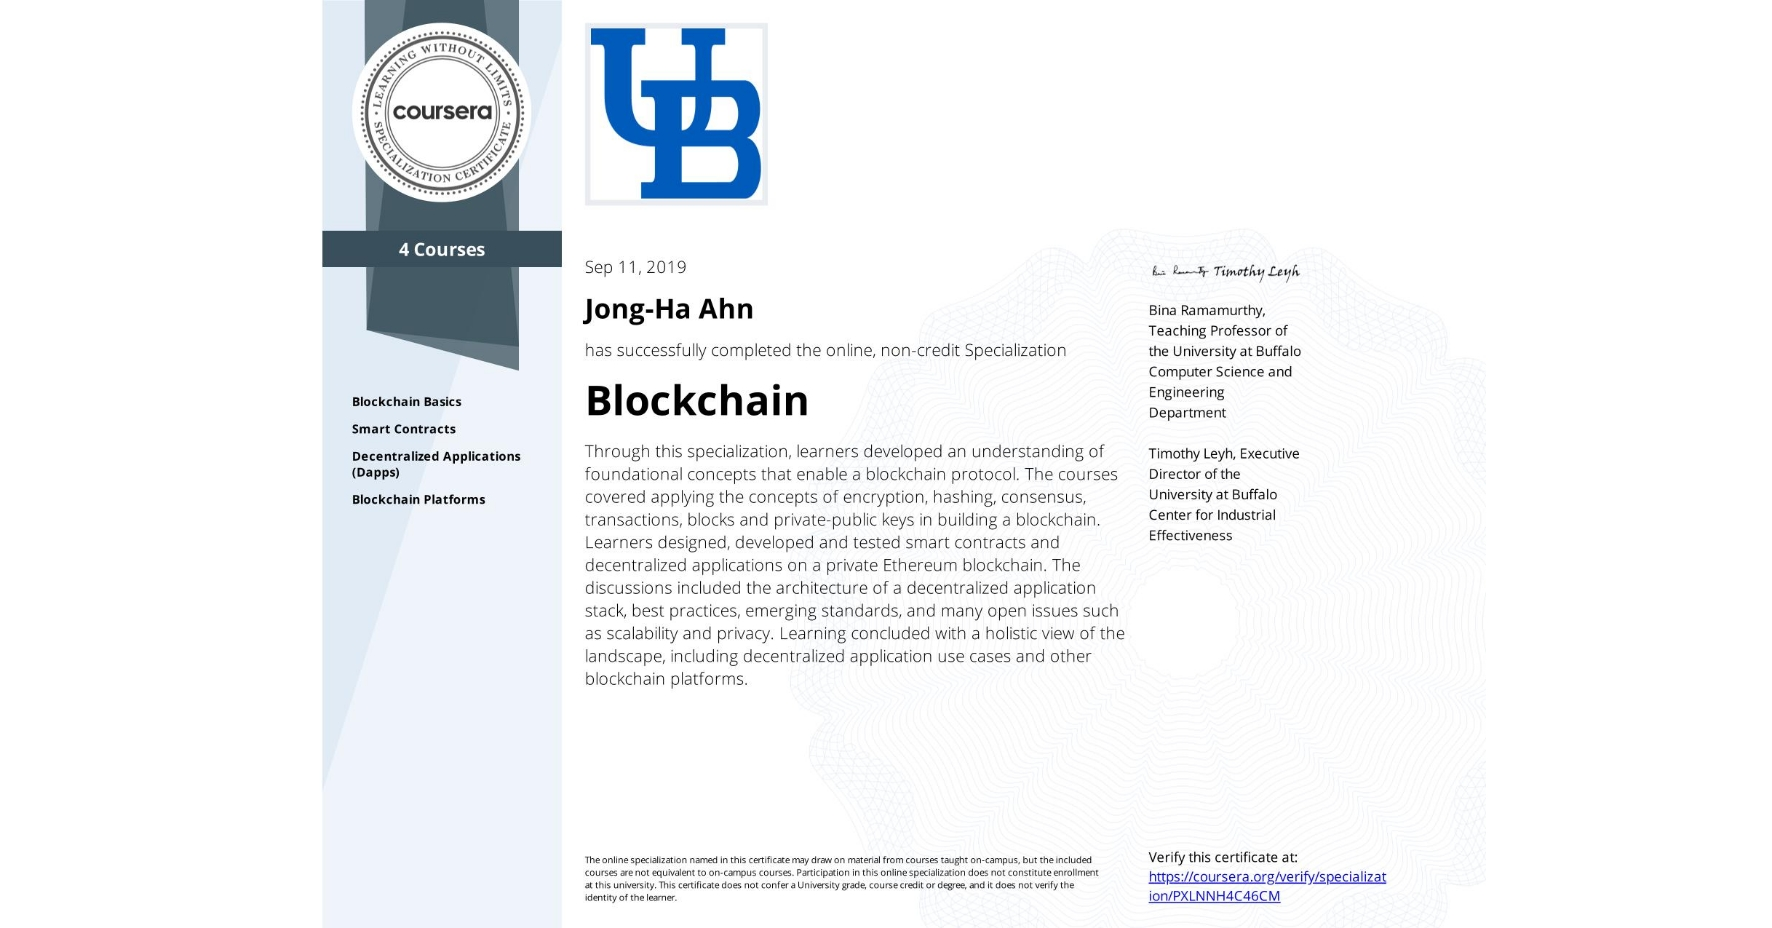 View certificate for Jong-Ha Ahn, Blockchain, offered through Coursera. Through this specialization, learners developed an understanding of foundational concepts that enable a blockchain protocol. The courses covered applying the concepts of encryption, hashing, consensus, transactions, blocks and private-public keys in building a blockchain. Learners designed, developed and tested smart contracts and decentralized applications on a private Ethereum blockchain. The discussions included the architecture of a decentralized application stack, best practices, emerging standards, and many open issues such as scalability and privacy. Learning concluded with a holistic view of the landscape, including decentralized application use cases and other blockchain platforms.